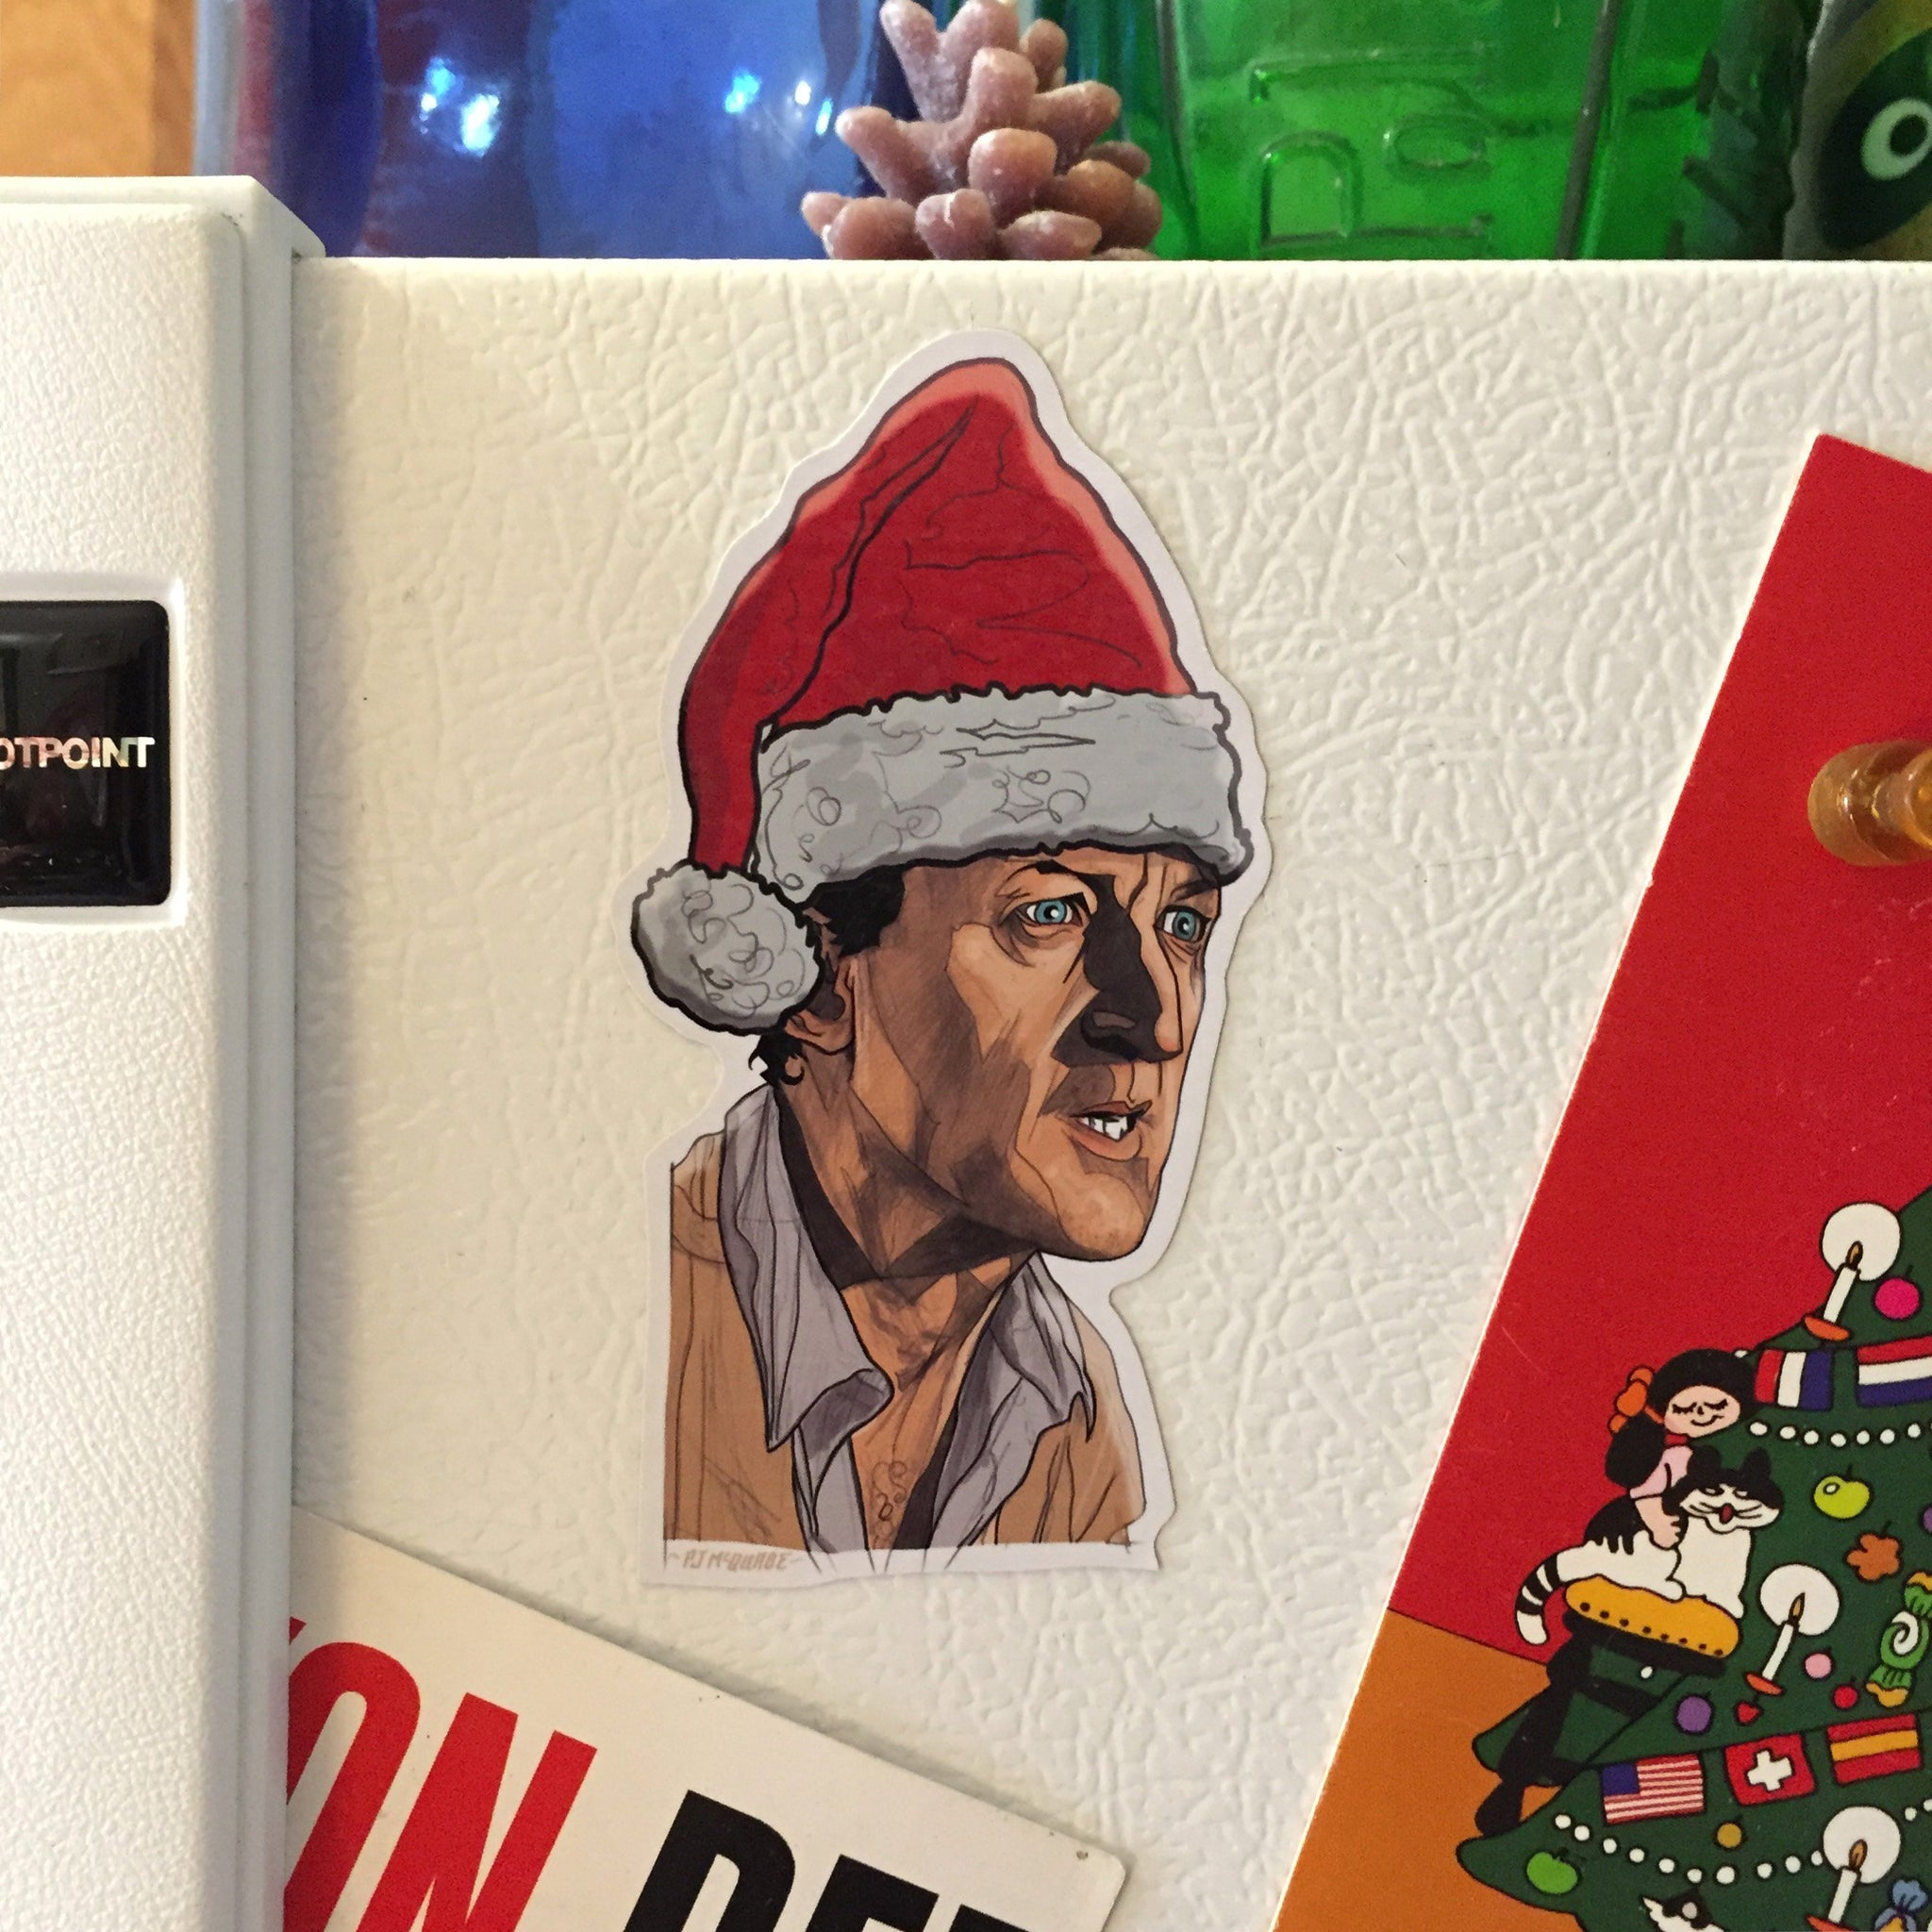 MULDOON Jurassic Park Christmas FRIDGE MAGNET!